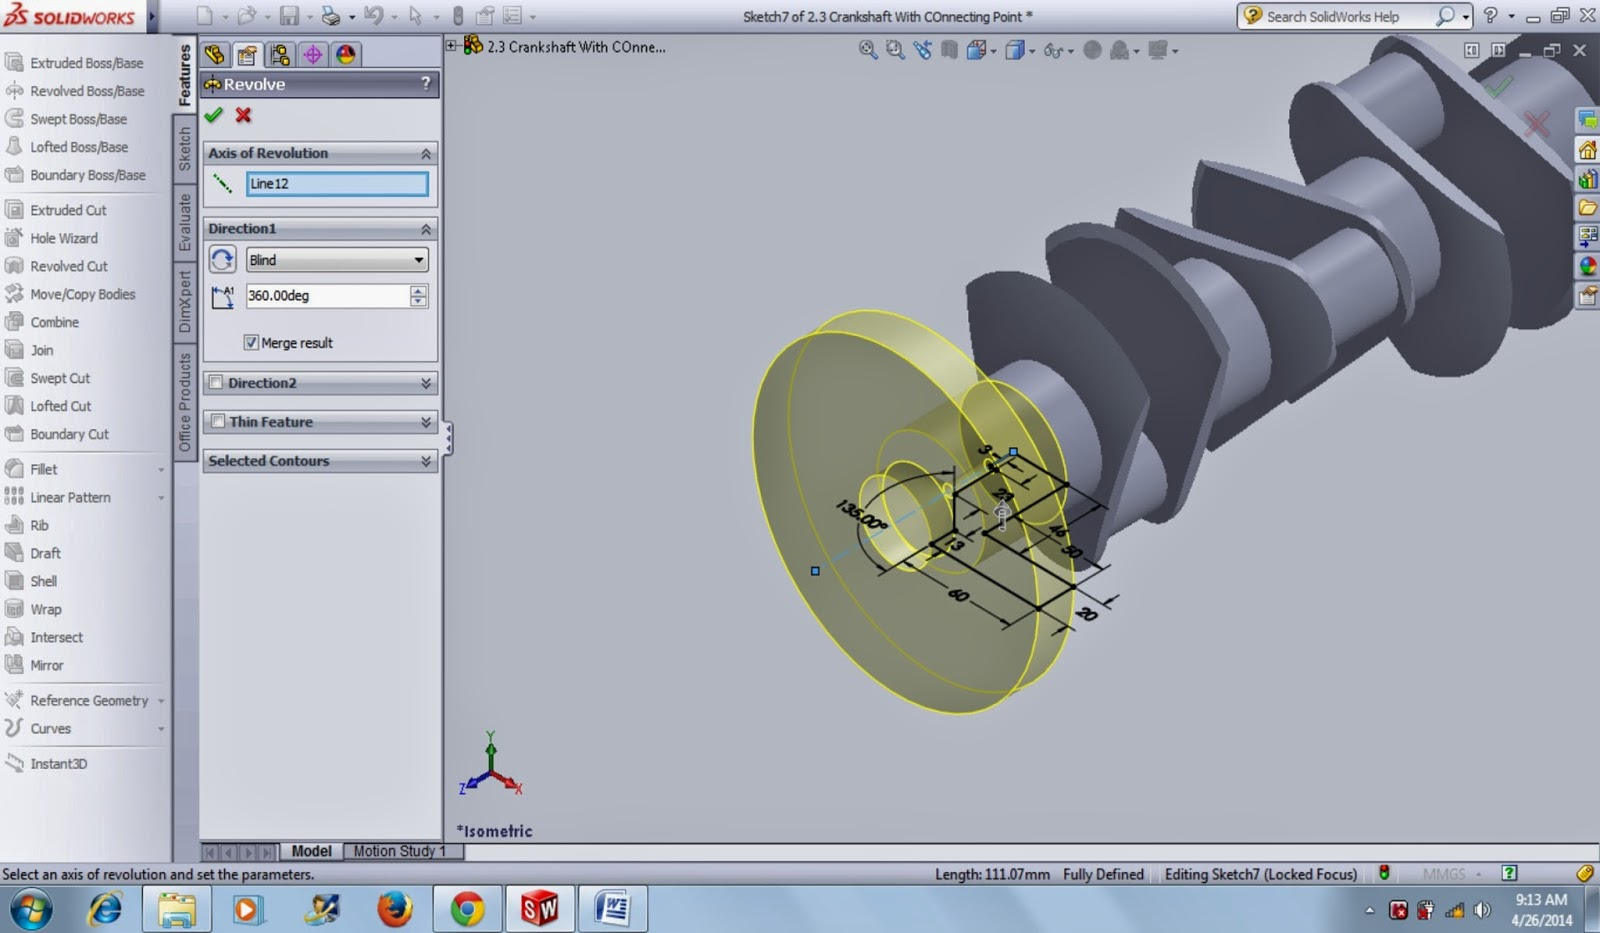 Solidworks tutorial, free download ebook and online ...